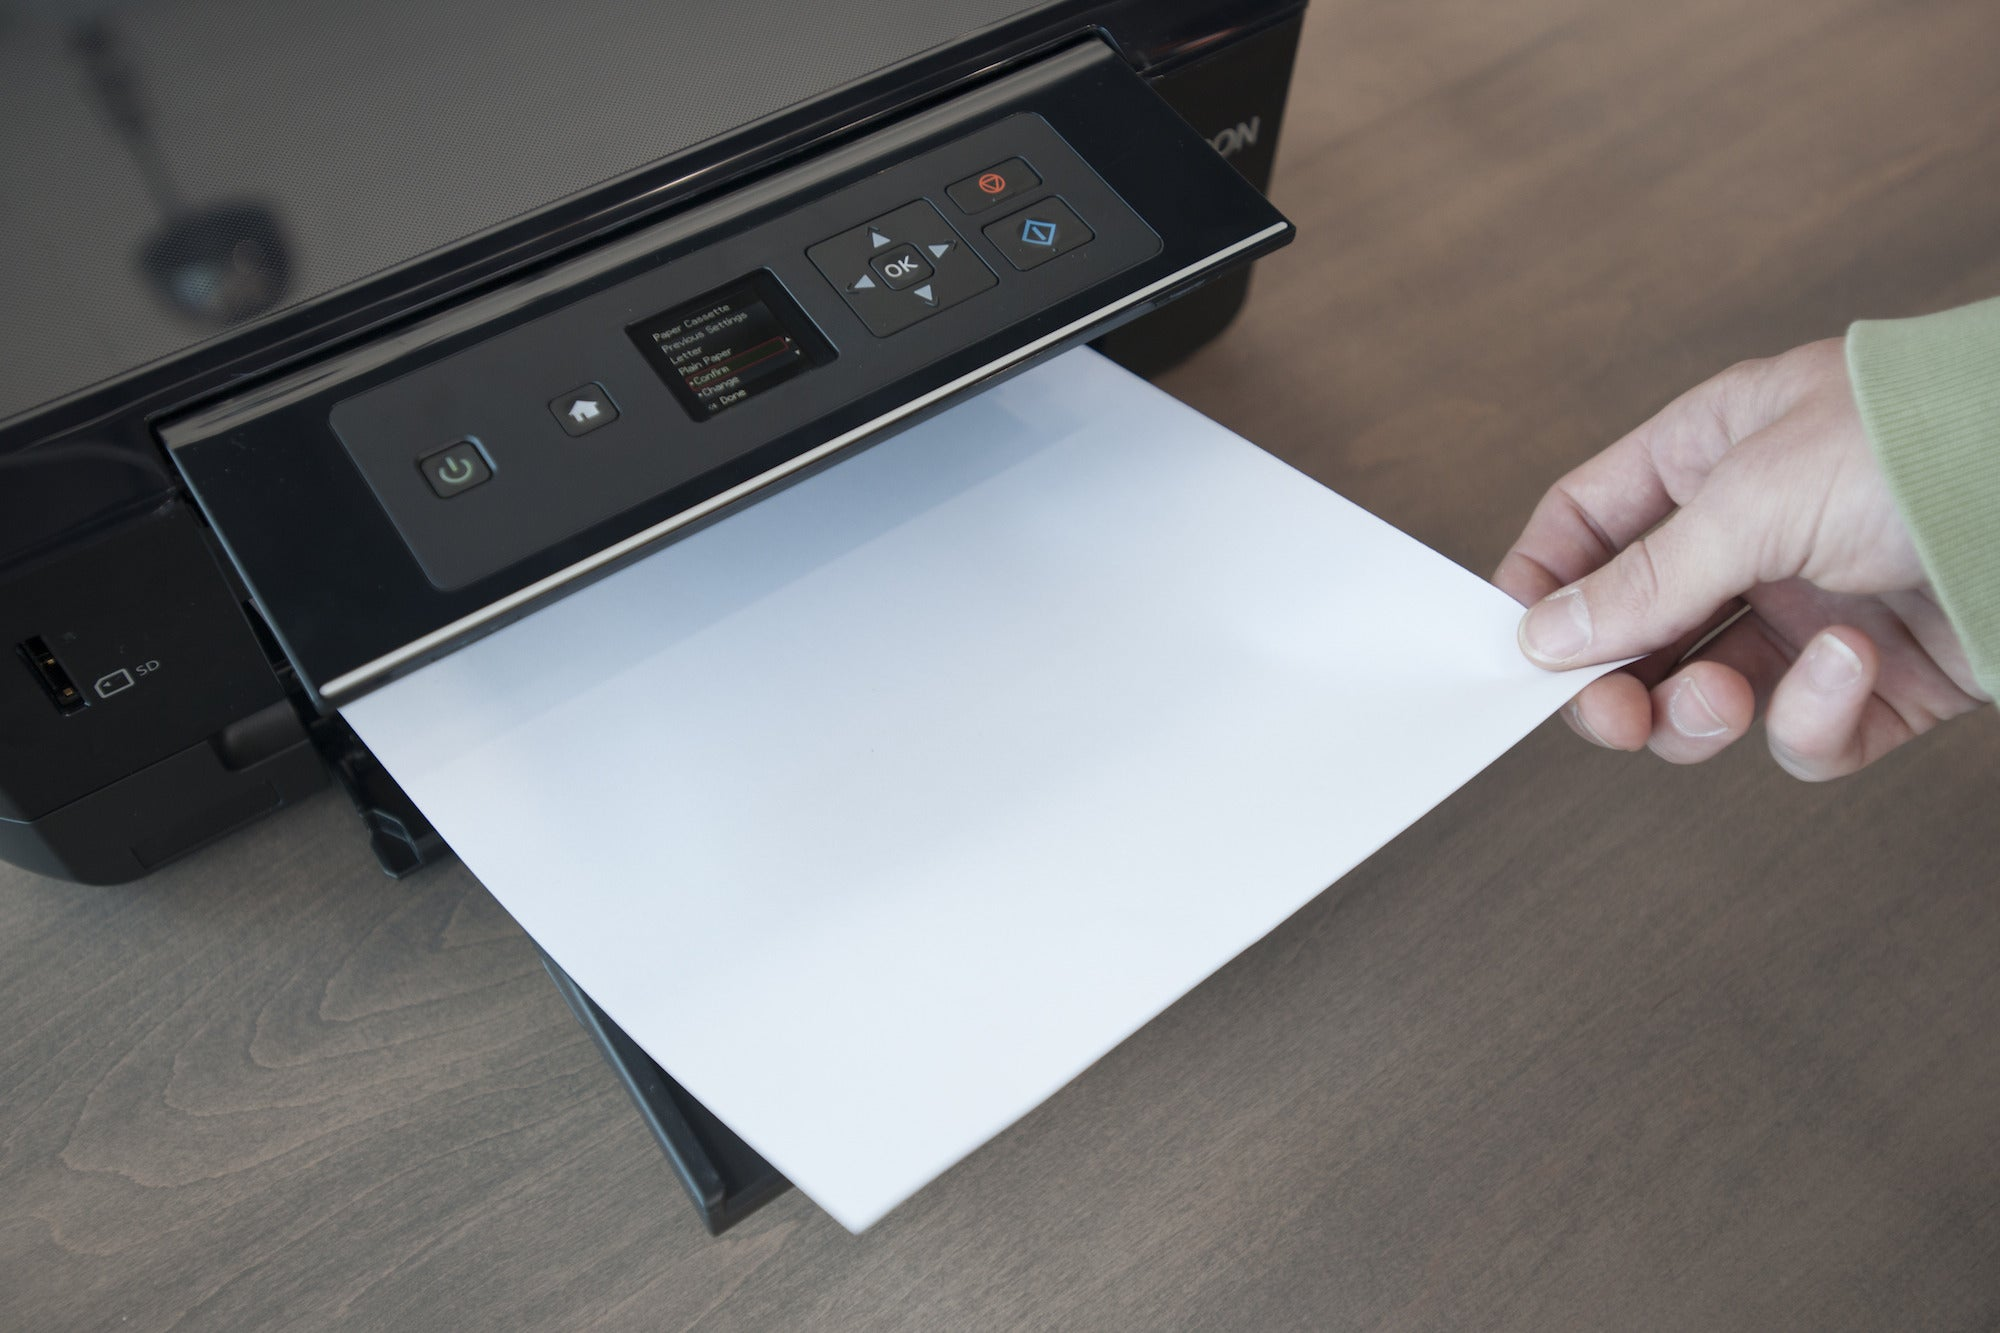 Epson Expression Premium XP-520 review: $130 printer ...